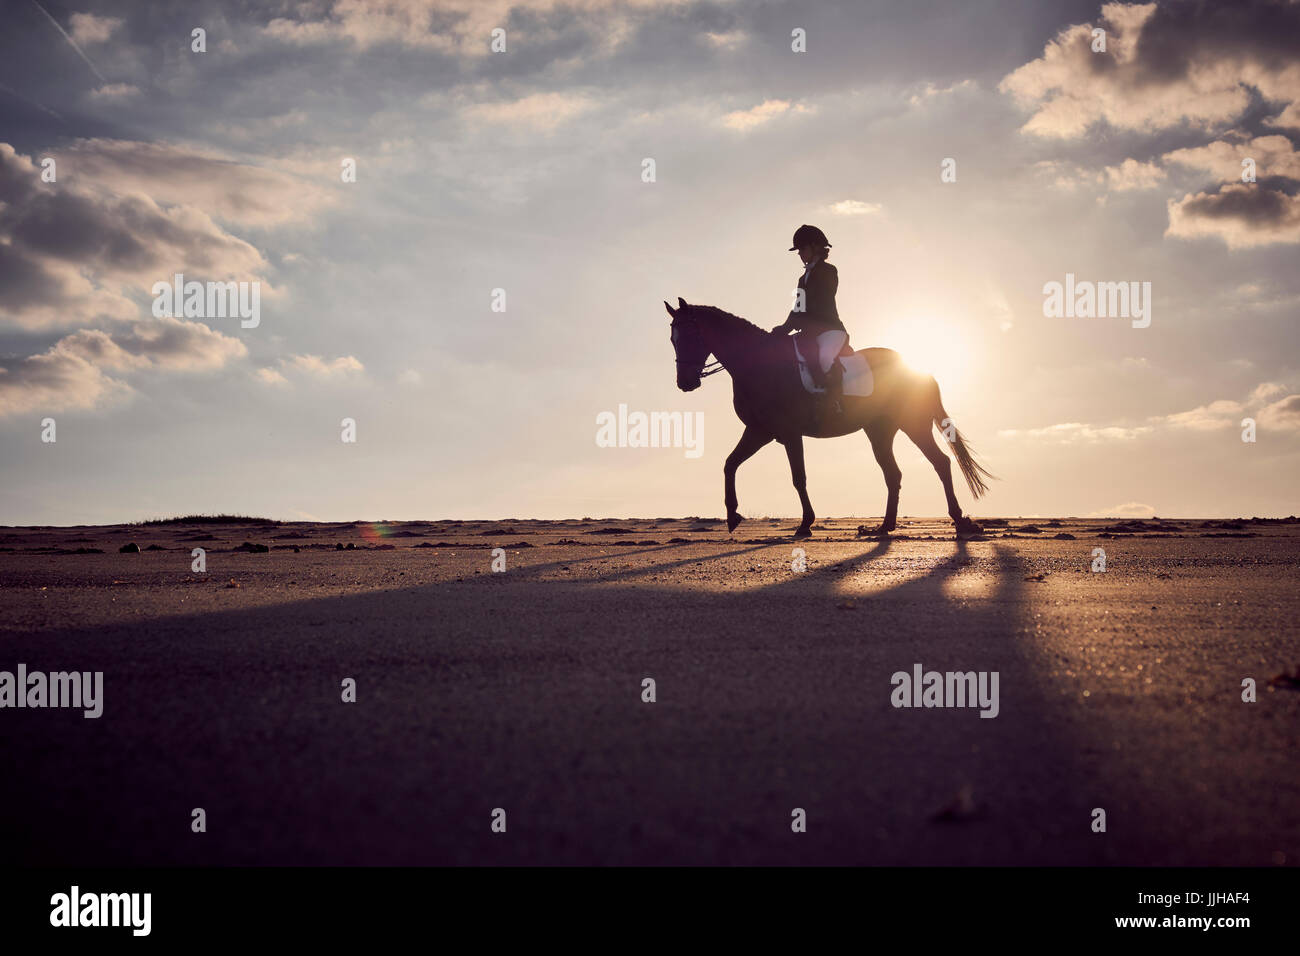 A young woman riding her horse on the beach at sunset. - Stock Image